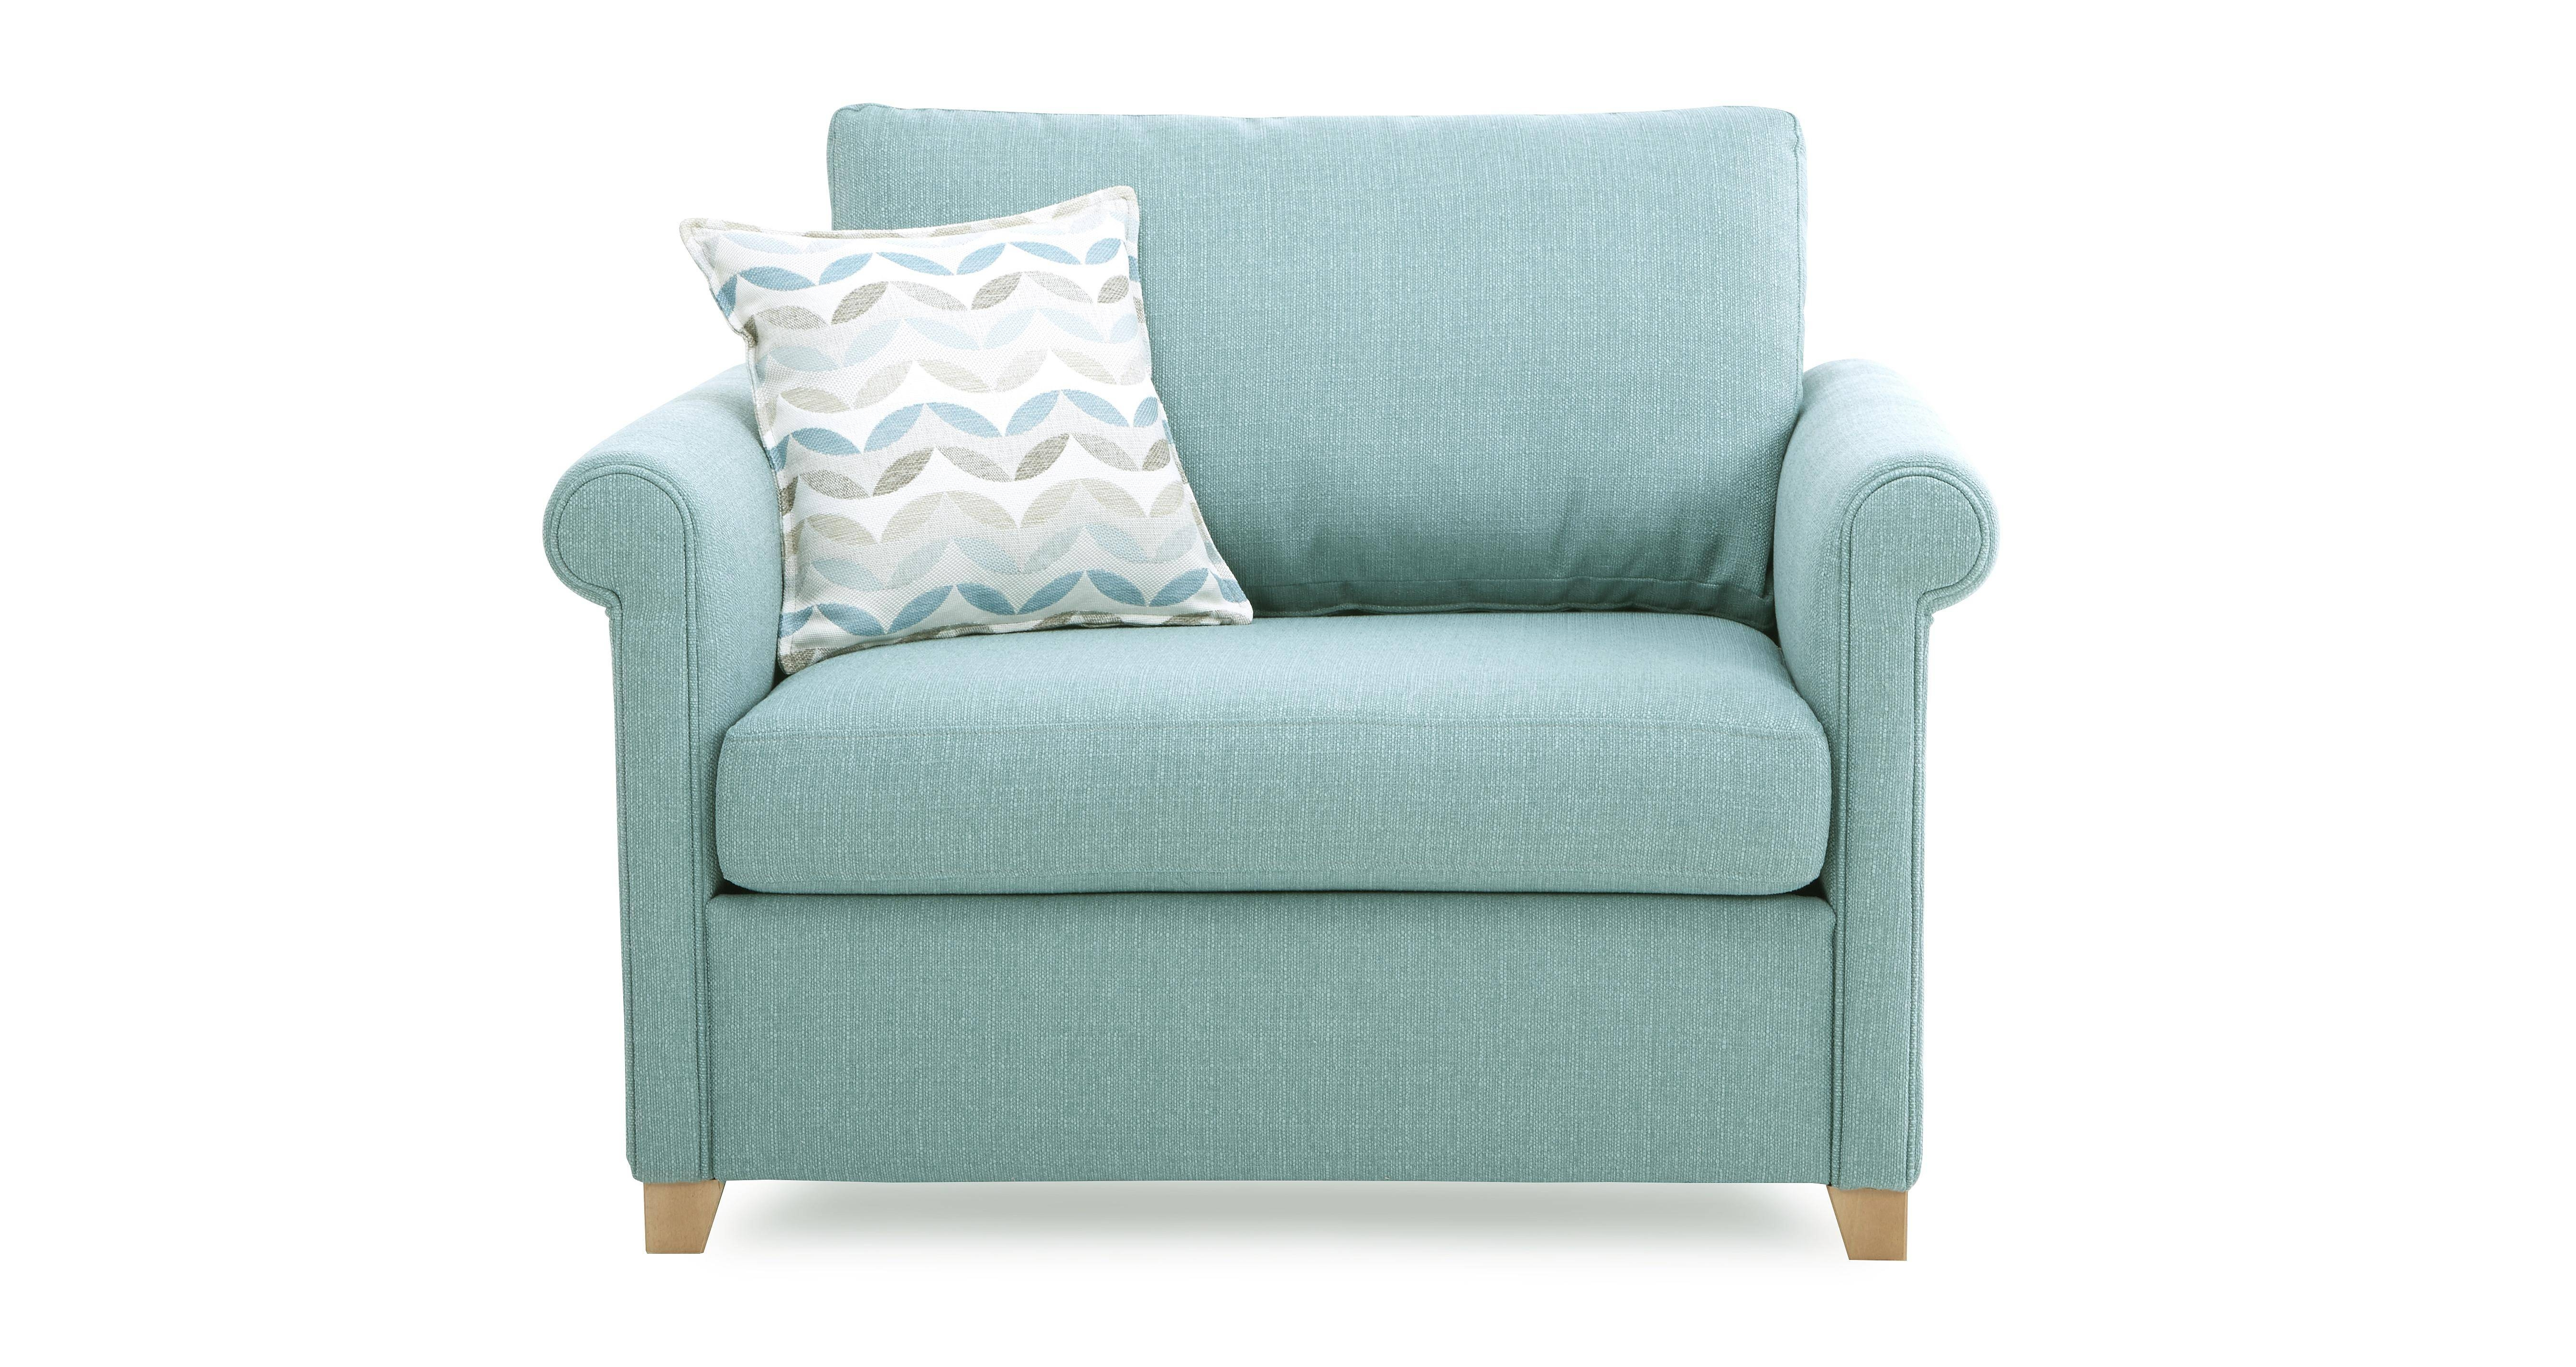 Sofas Center : Single Chair Sofa Beds Model Ideas With Memory In Chair Sofas (View 22 of 30)